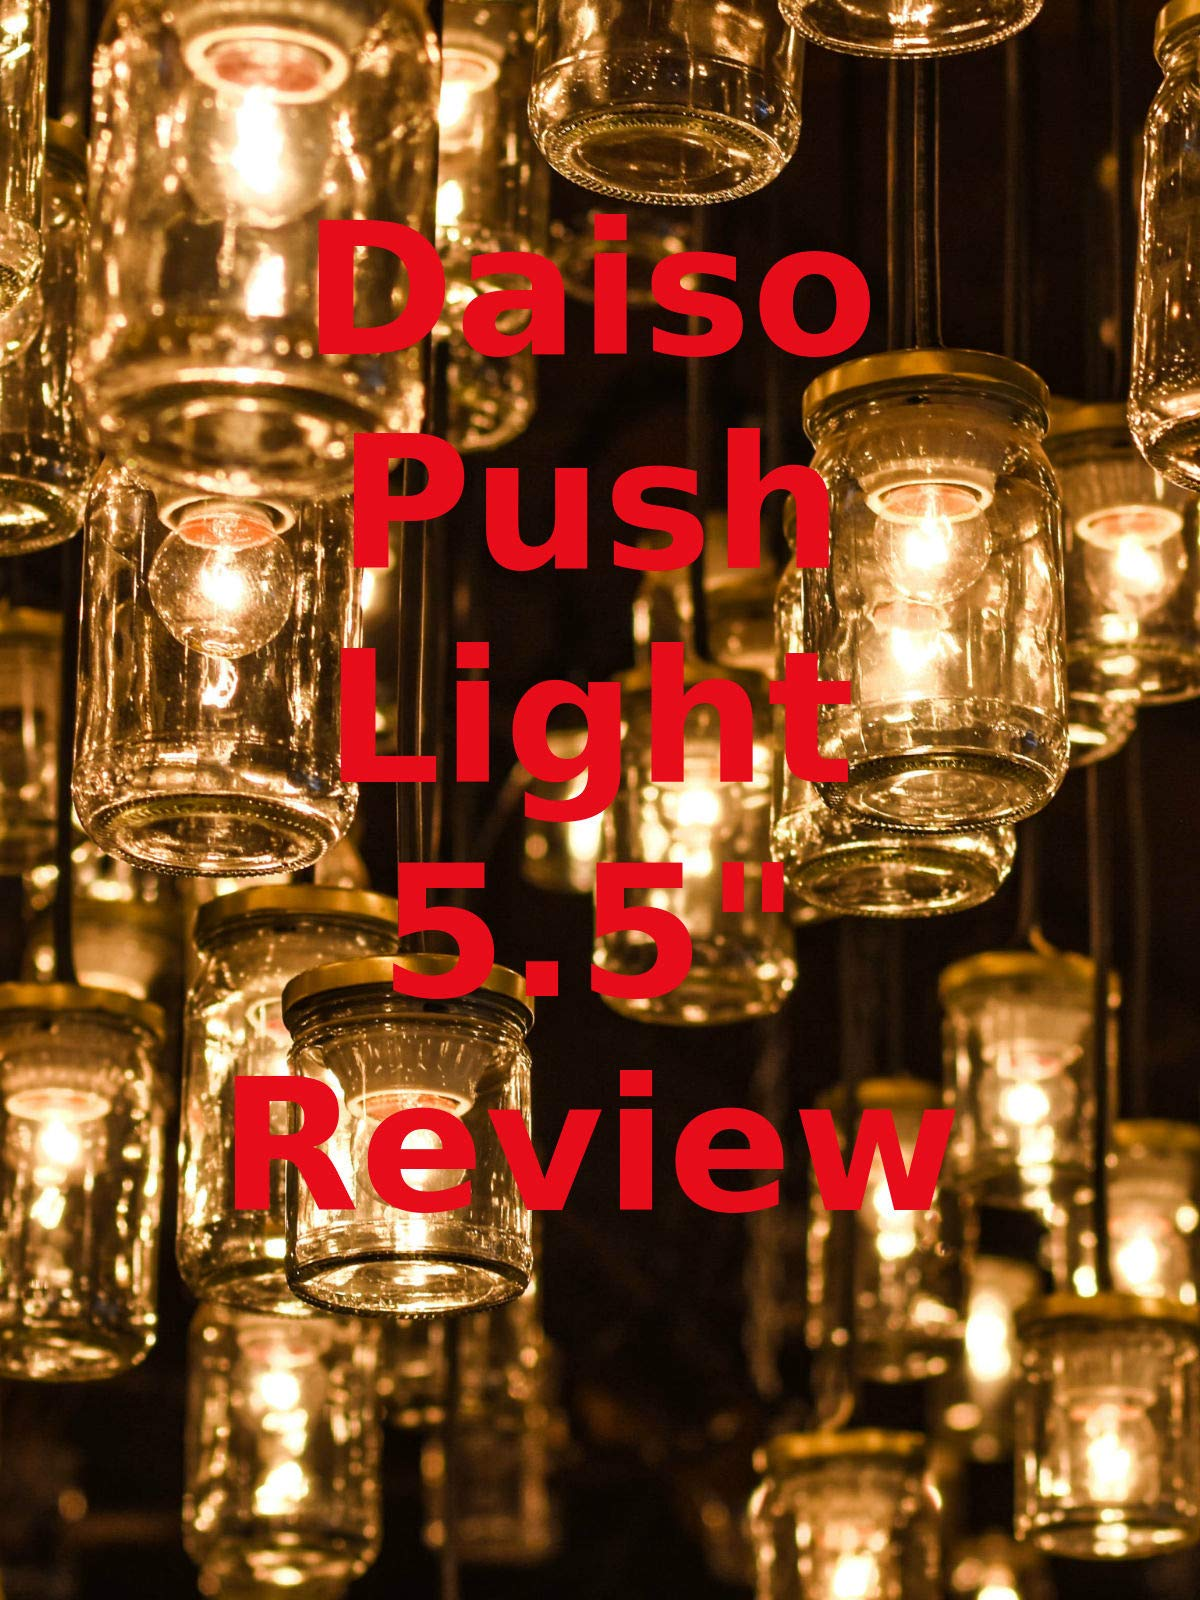 "Review: Daiso Push Light 5.5"" Review on Amazon Prime Video UK"